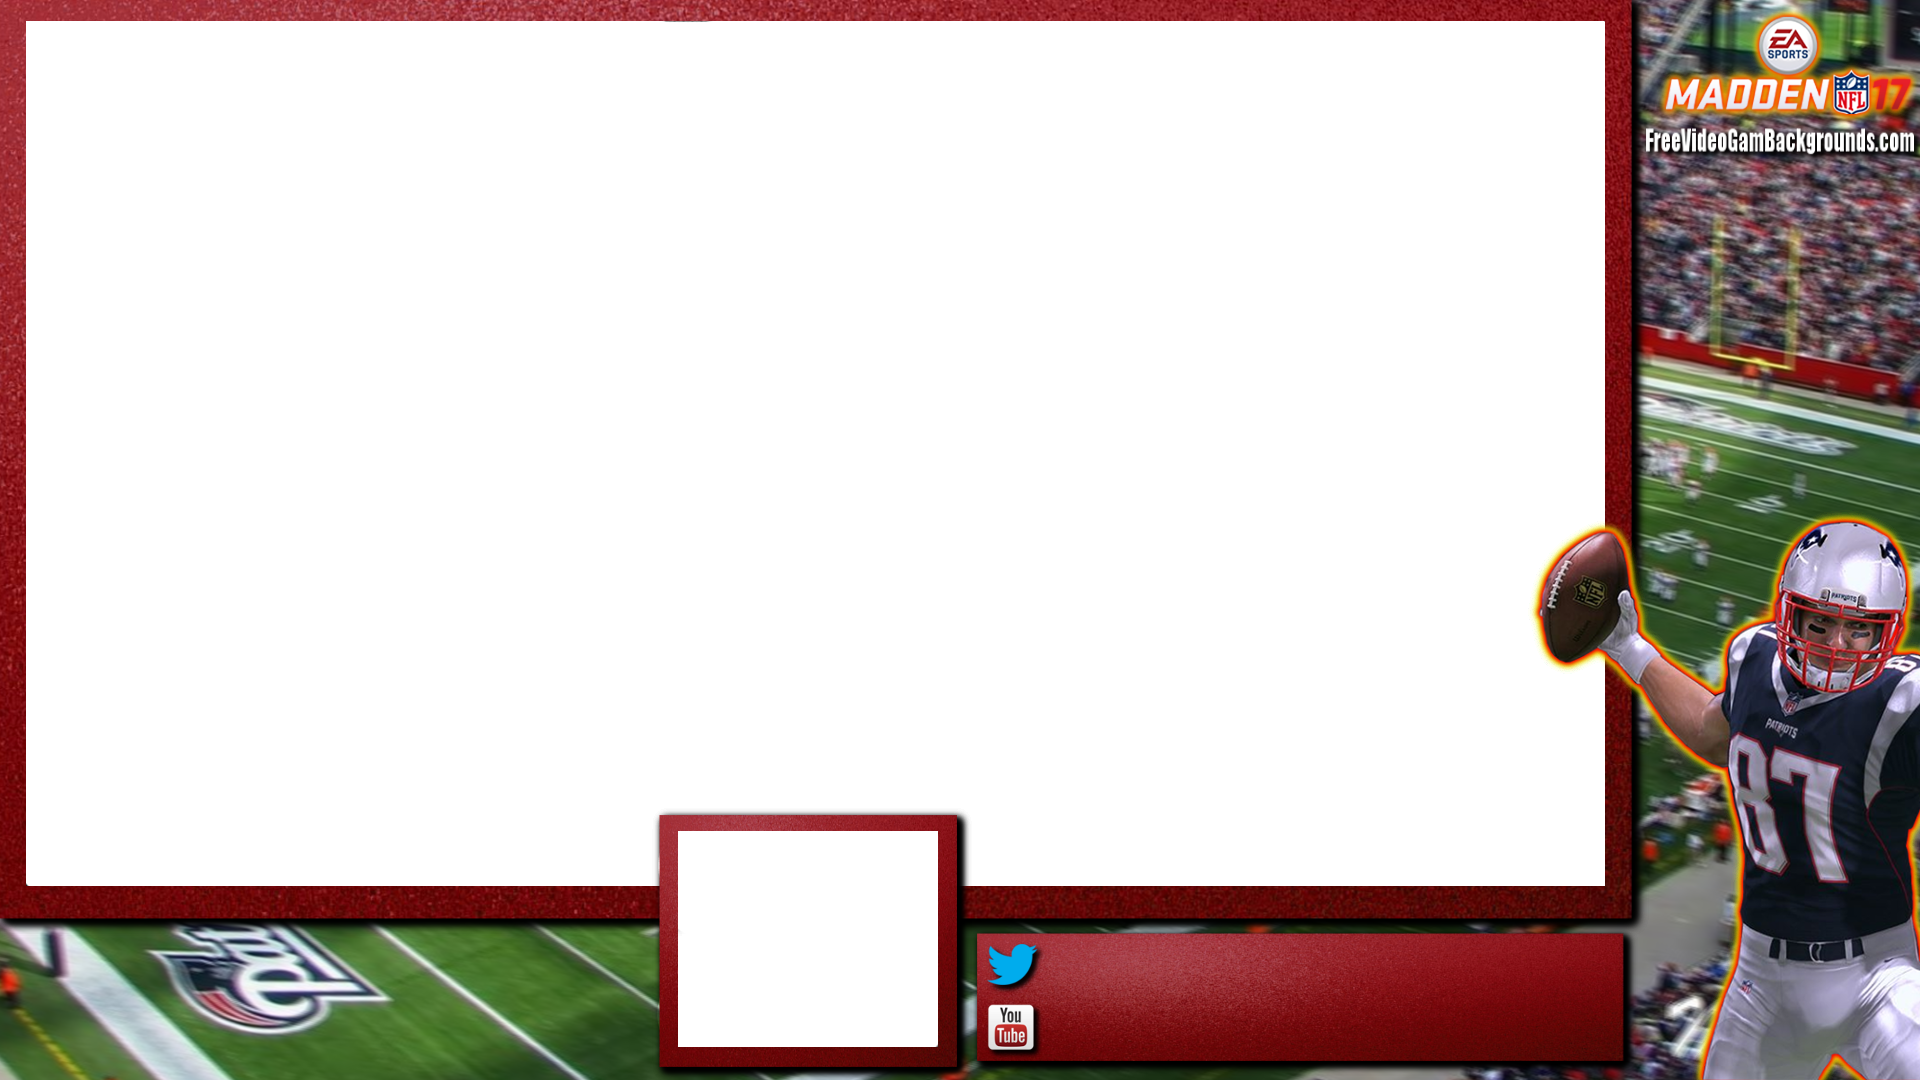 madden 17 twitch overlay free